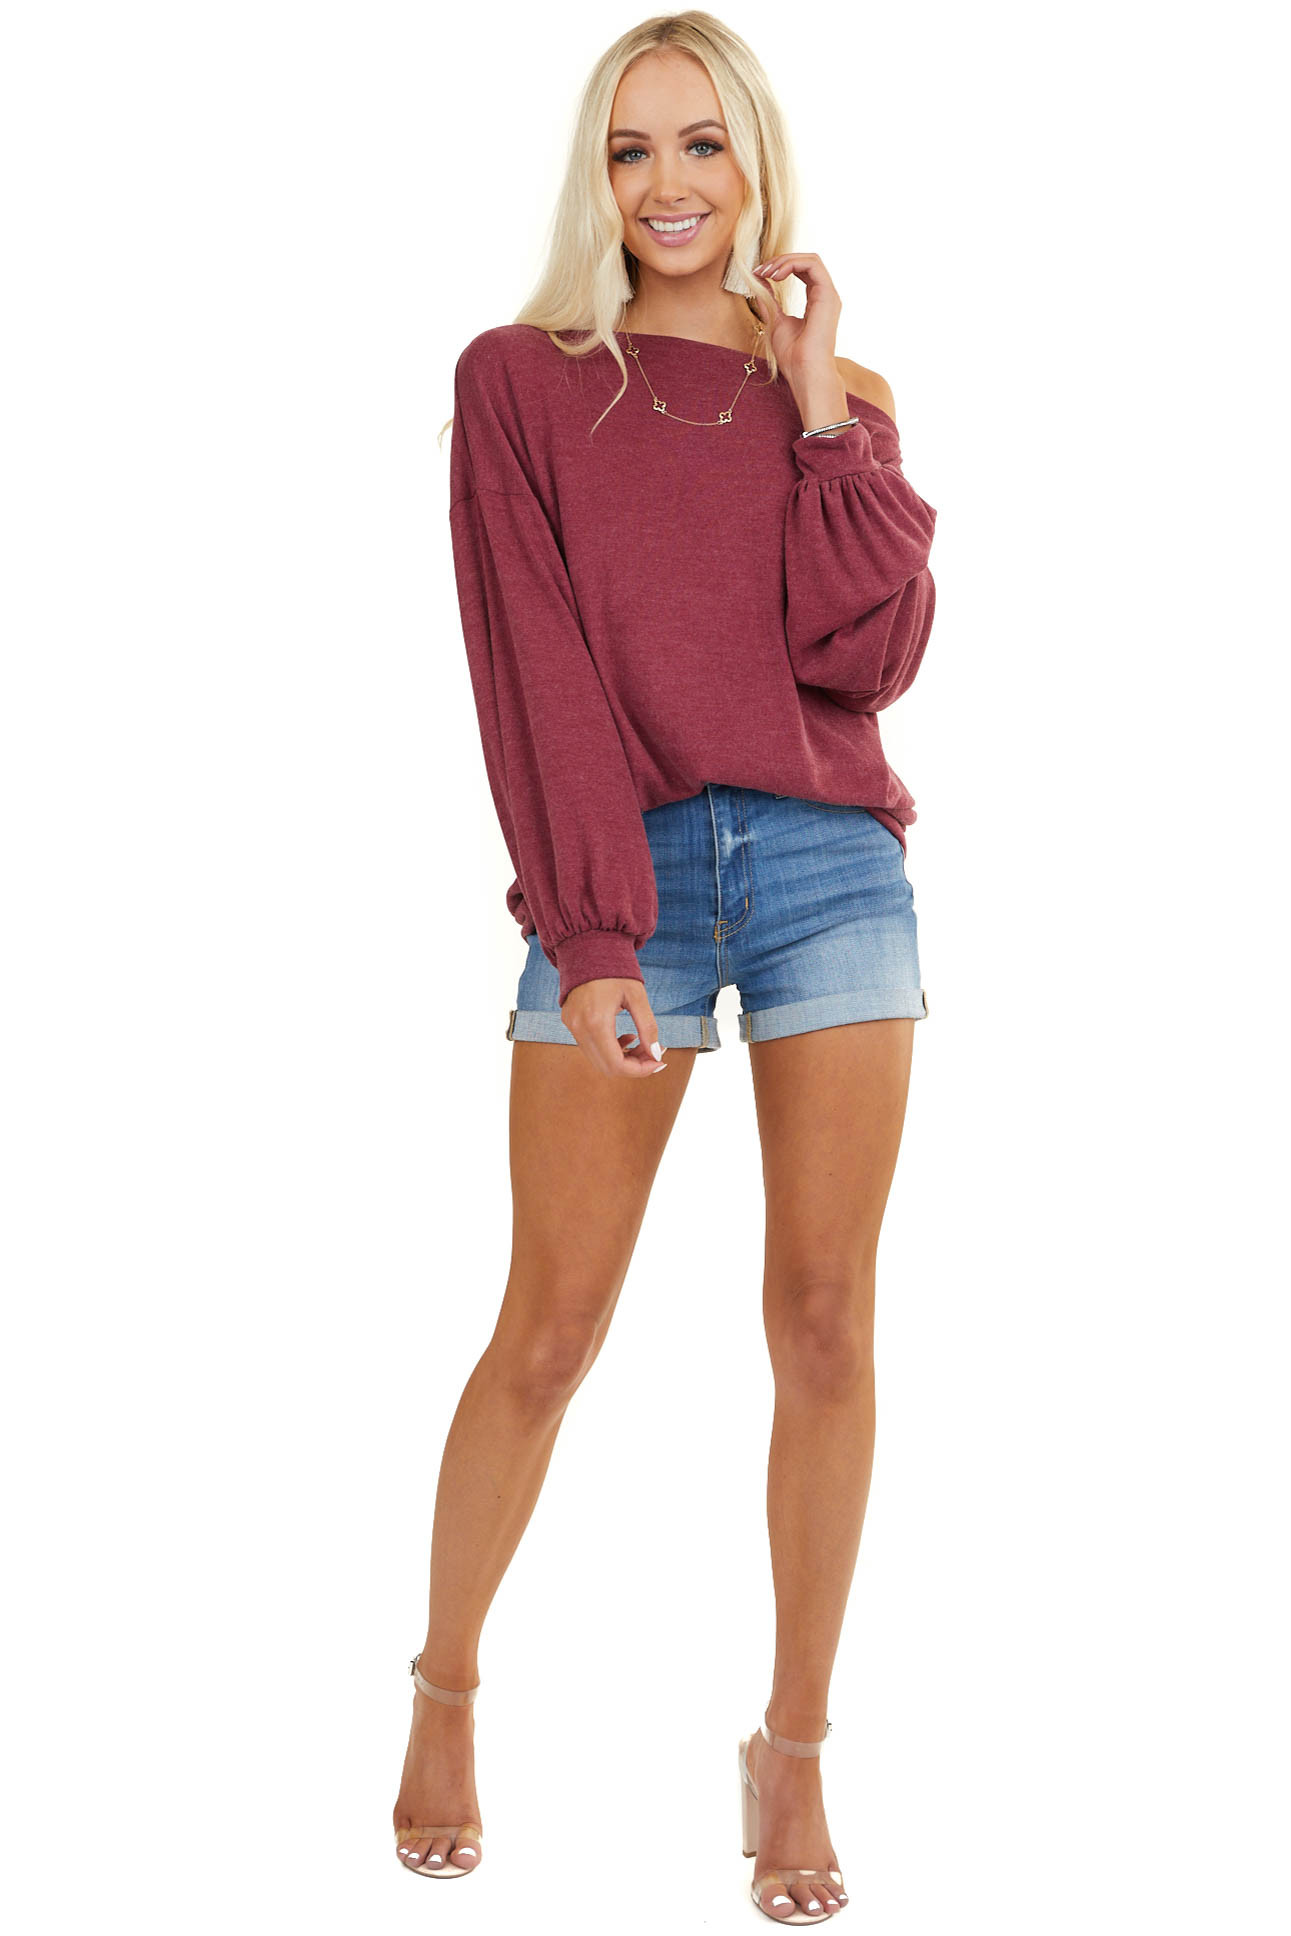 Faded Burgundy Off Shoulder Top with Long Bubble Sleeves